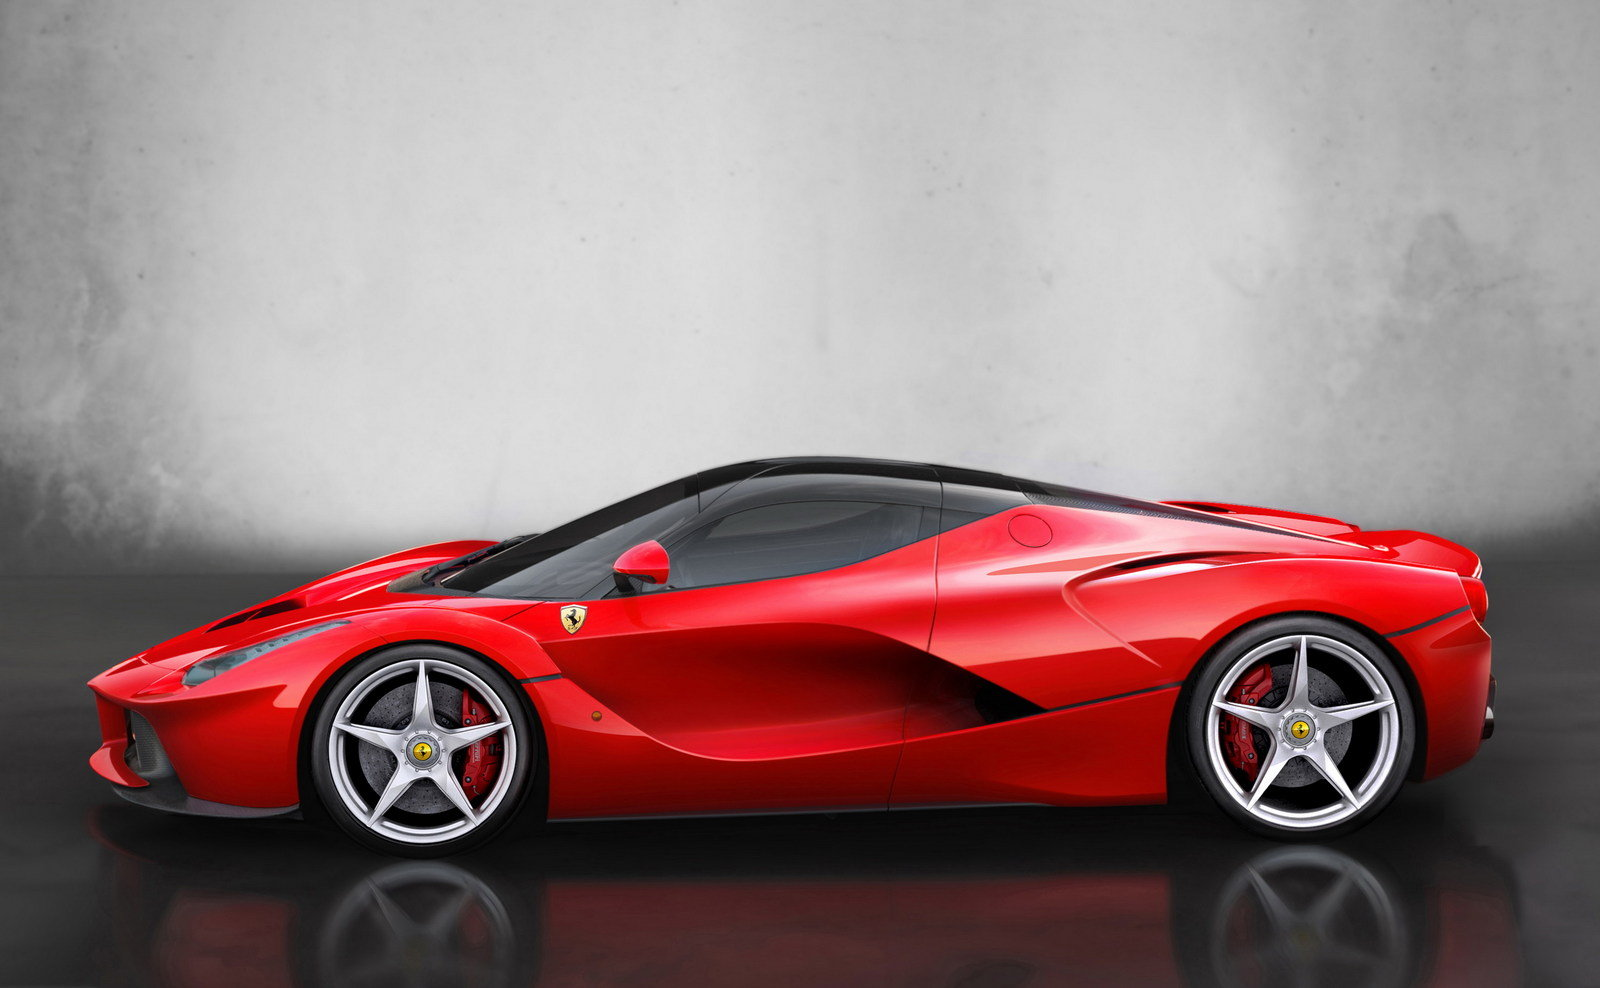 Ferrari LaFerrari: Latest News, Reviews, Specifications, Prices, Photos And Videos | Top Speed